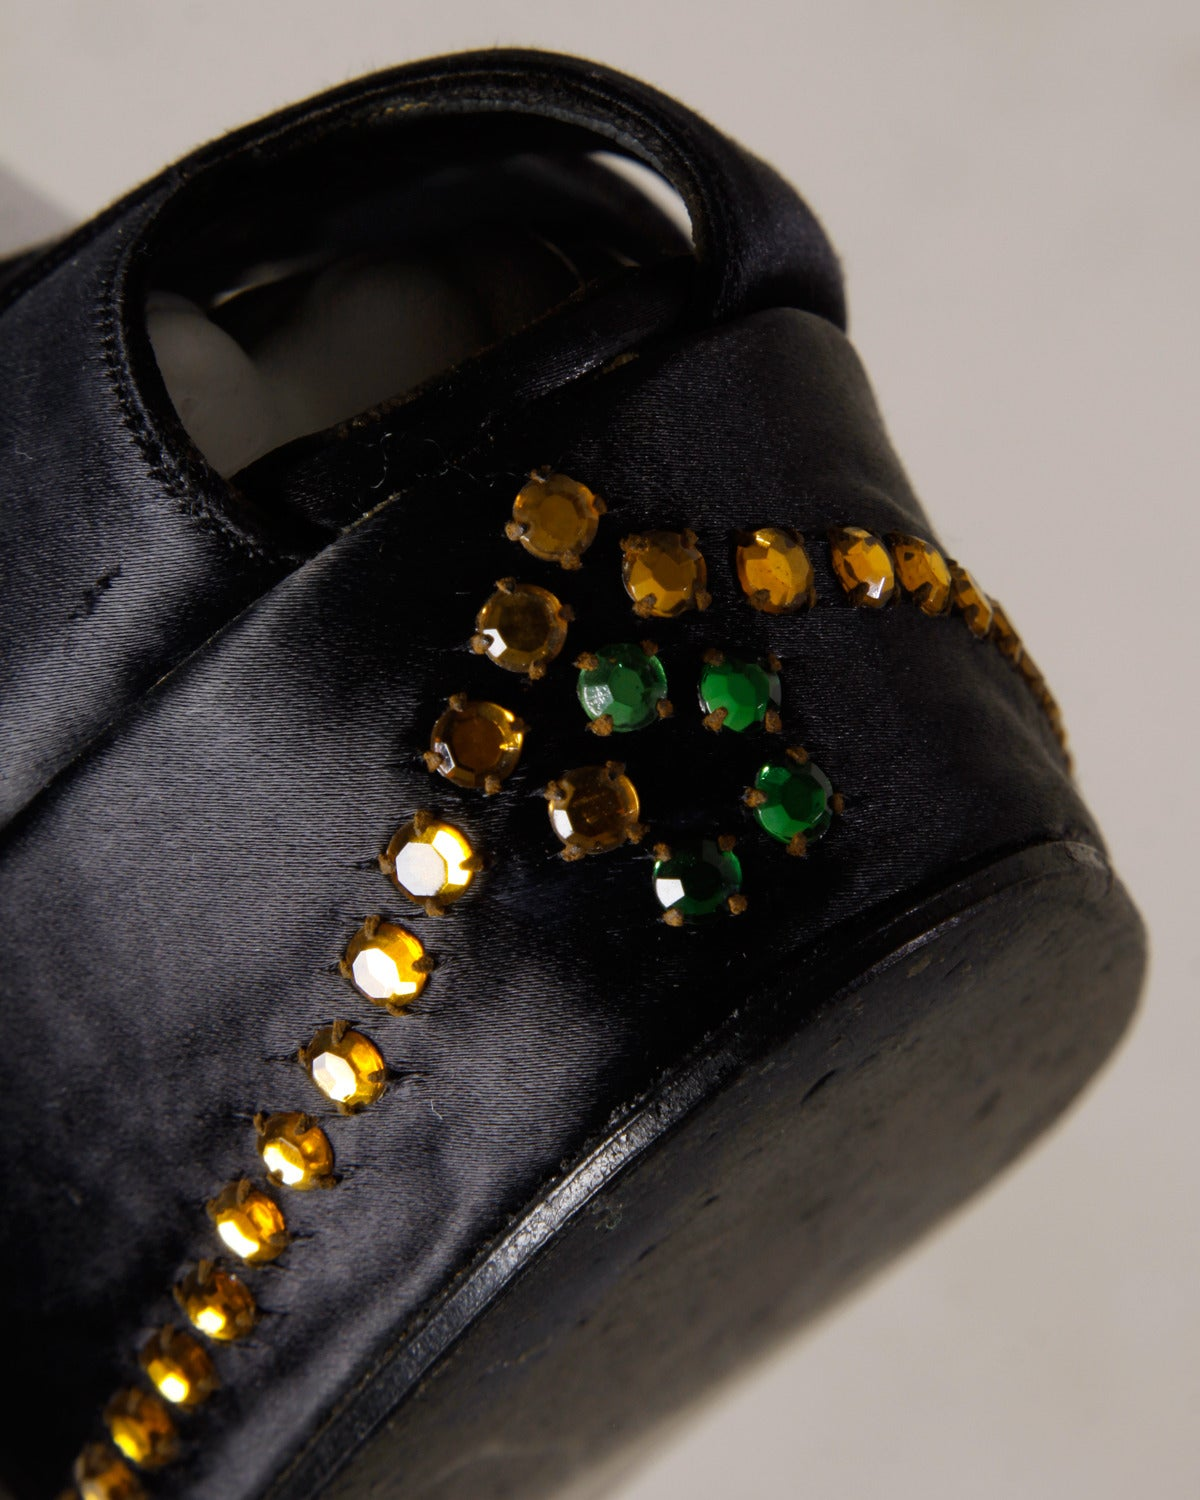 Incredible David Evins Vintage 1940s Rhinestone Silk Satin Platform Shoes 8A 37 In Excellent Condition For Sale In Sparks, NV